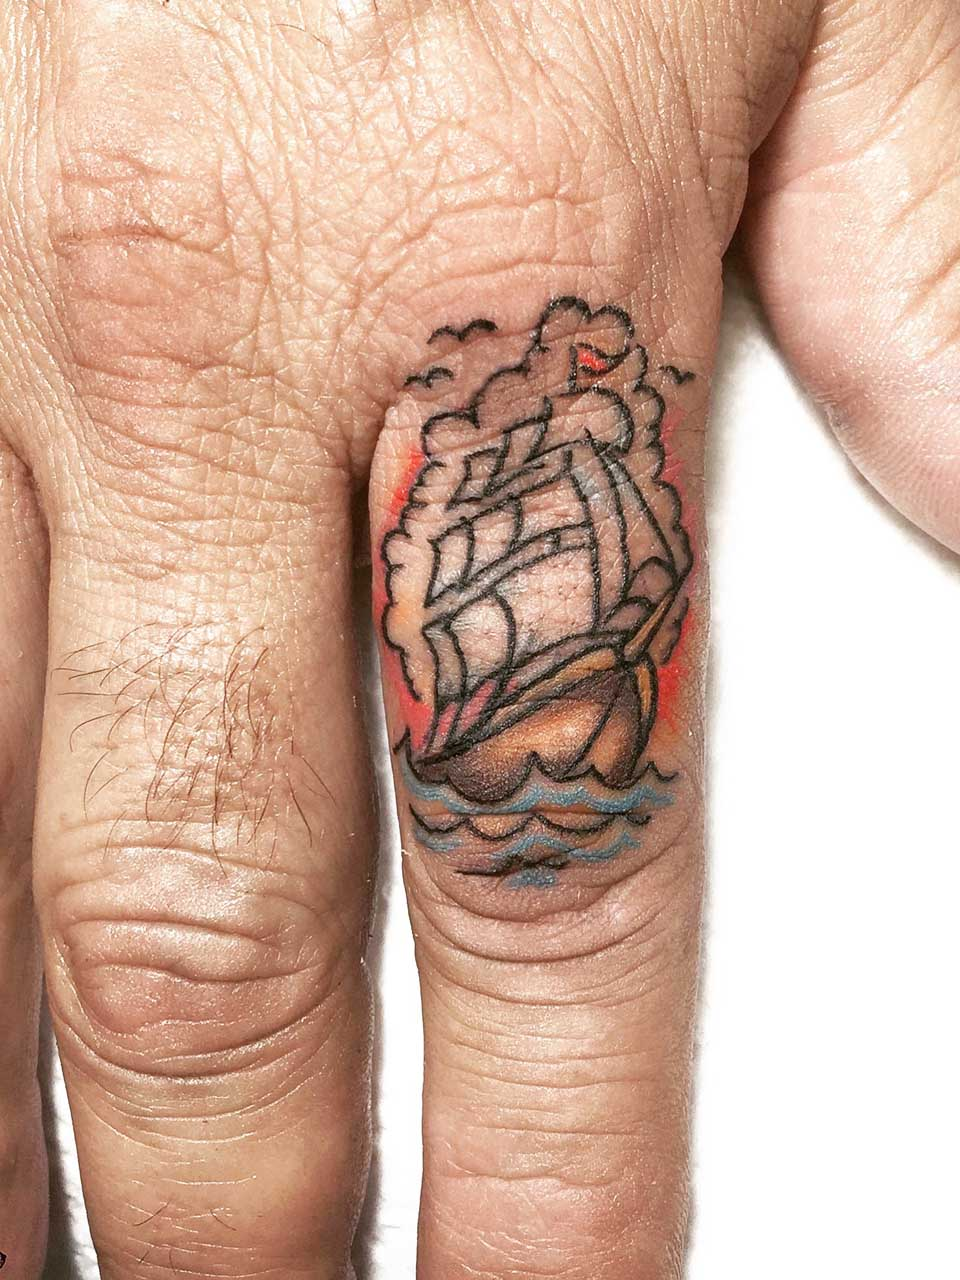 kevin-deuso-tattoo-014-color-pointer-finger